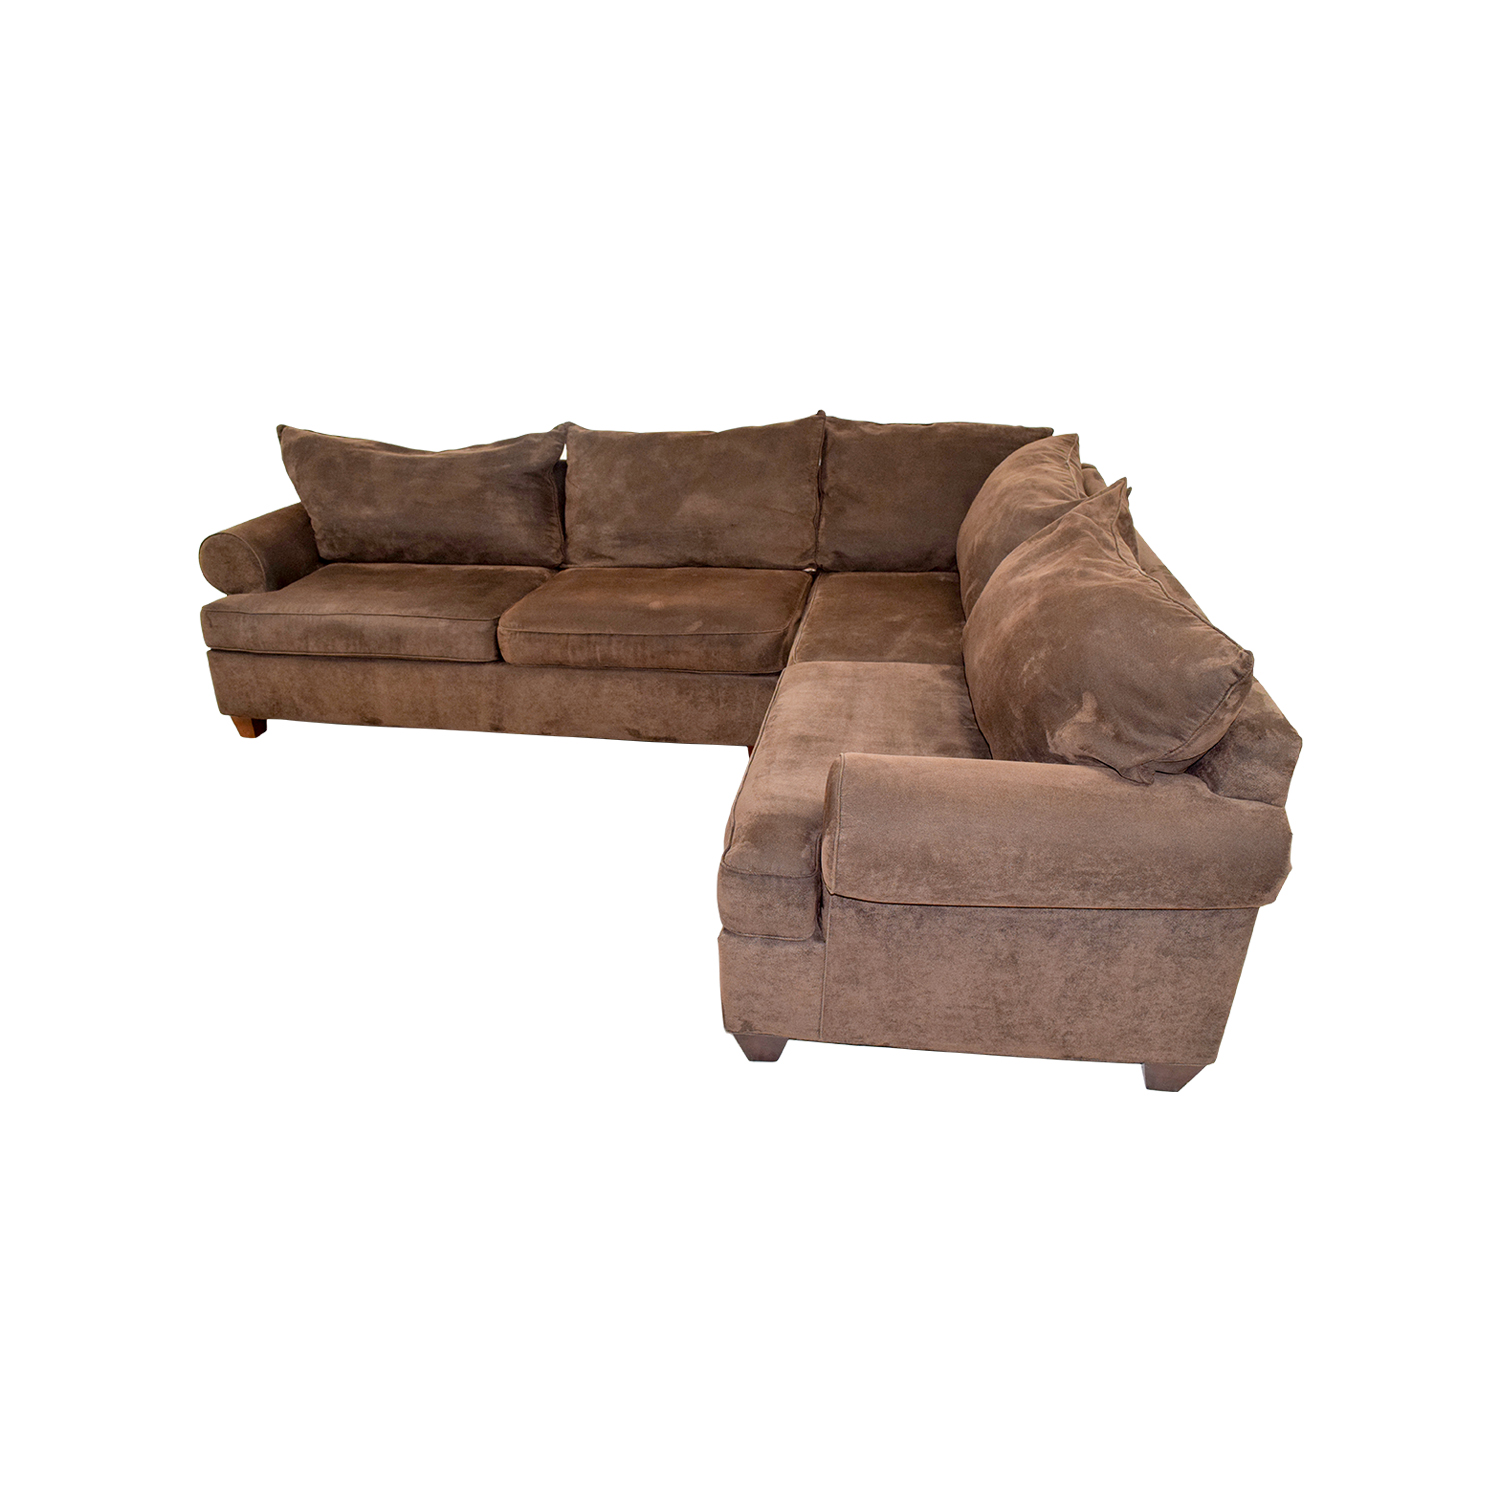 75 off brown corduroy l shaped sectional couch sofas